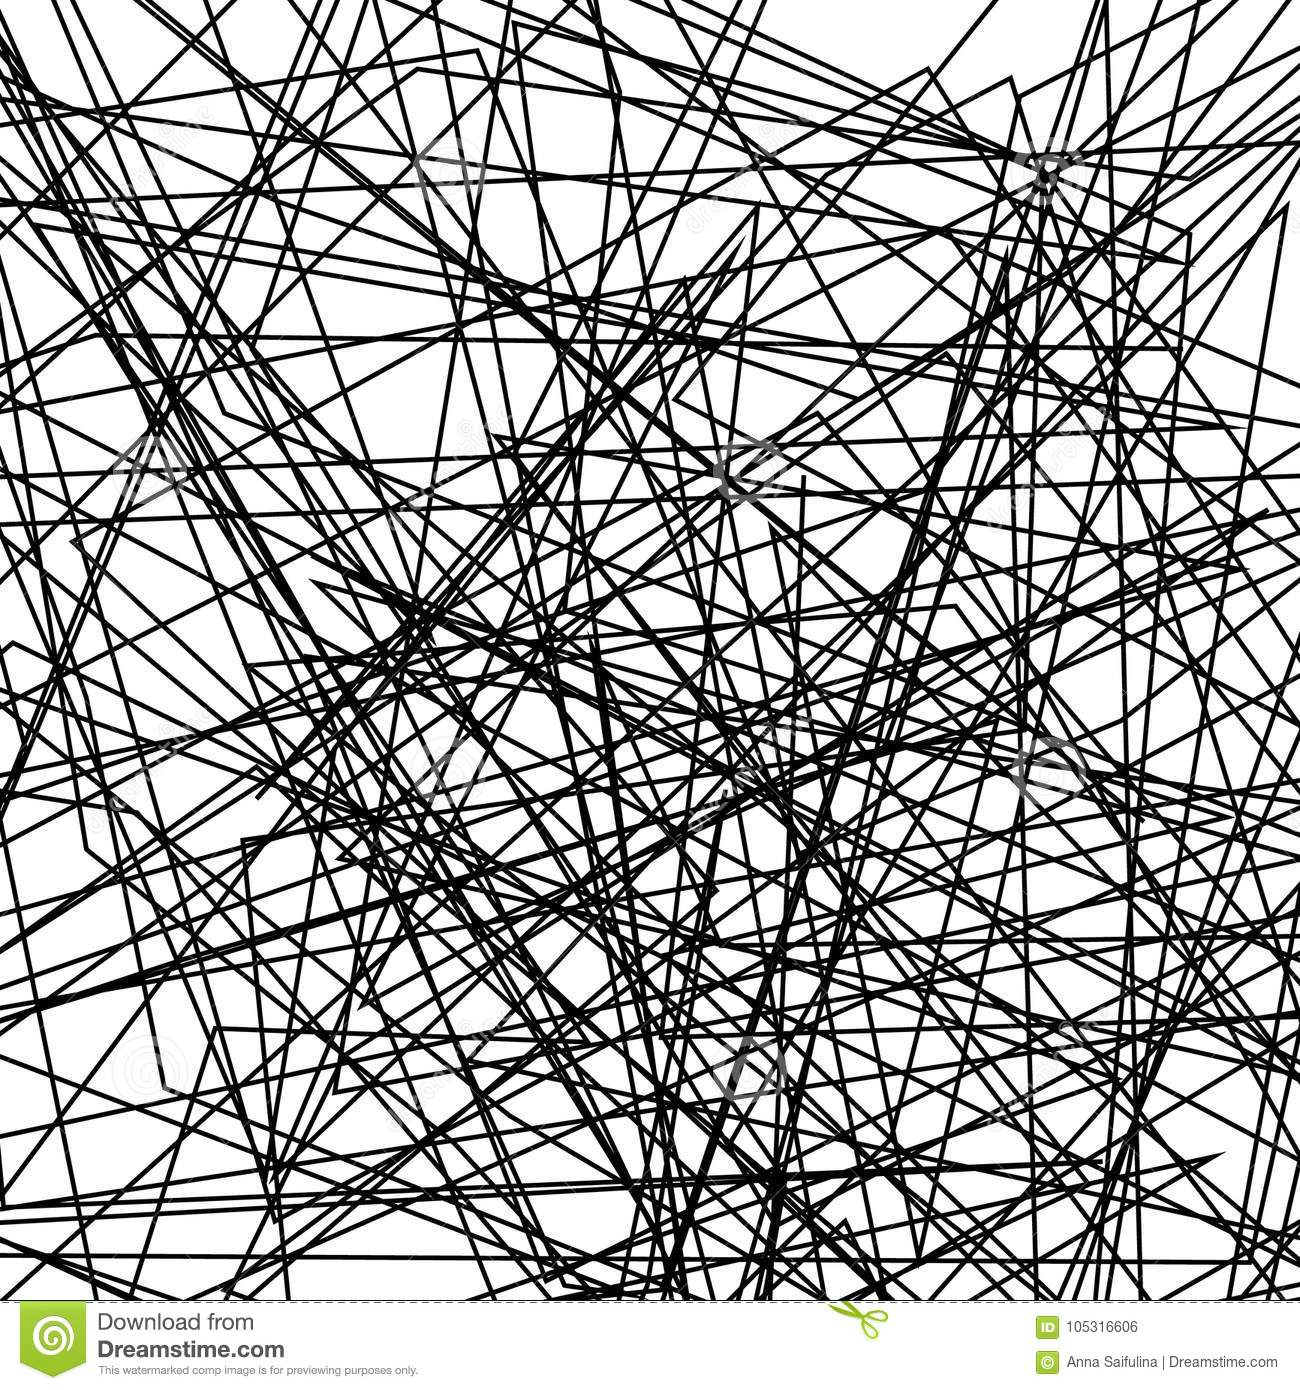 asymmetrical texture with random chaotic lines  abstract geometric pattern  black and white